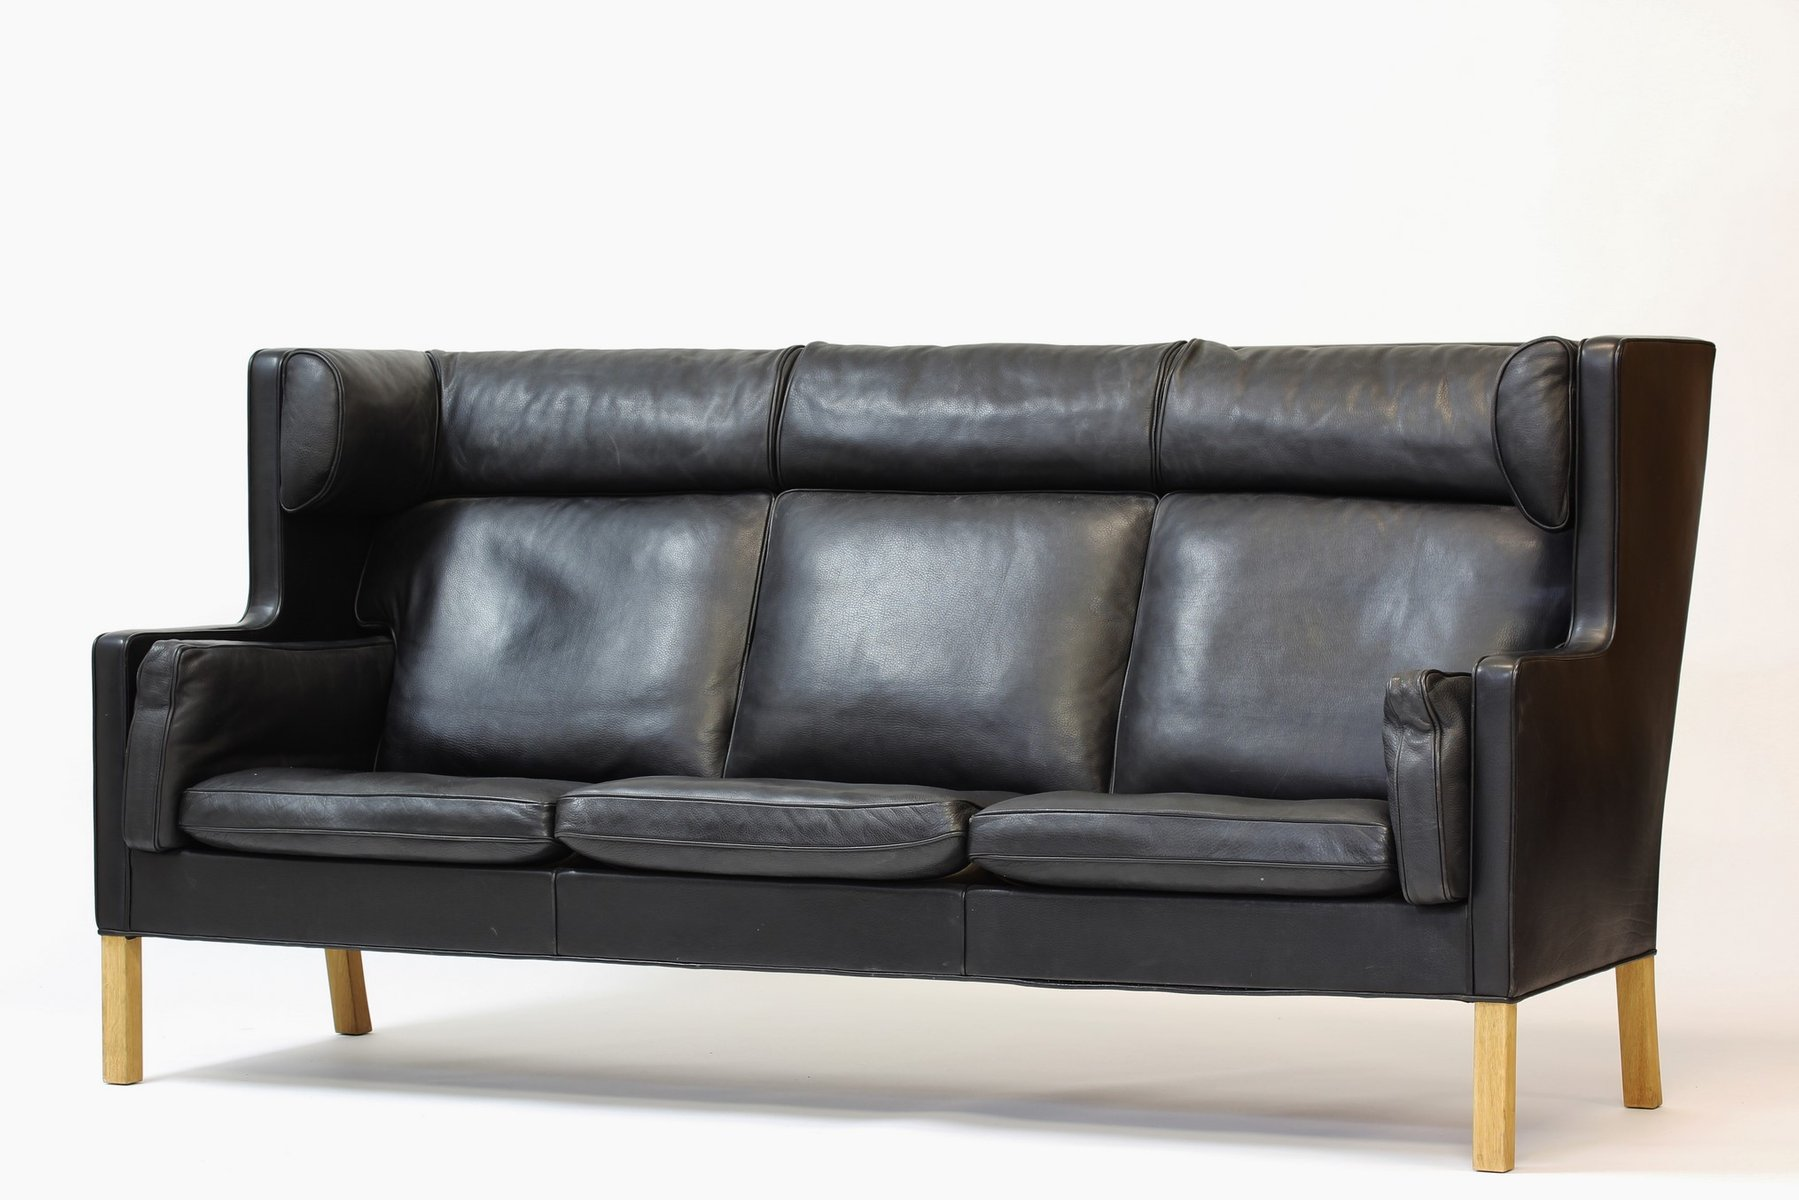 Coup Sofa By B Rge Mogensen For Fredericia Furniture